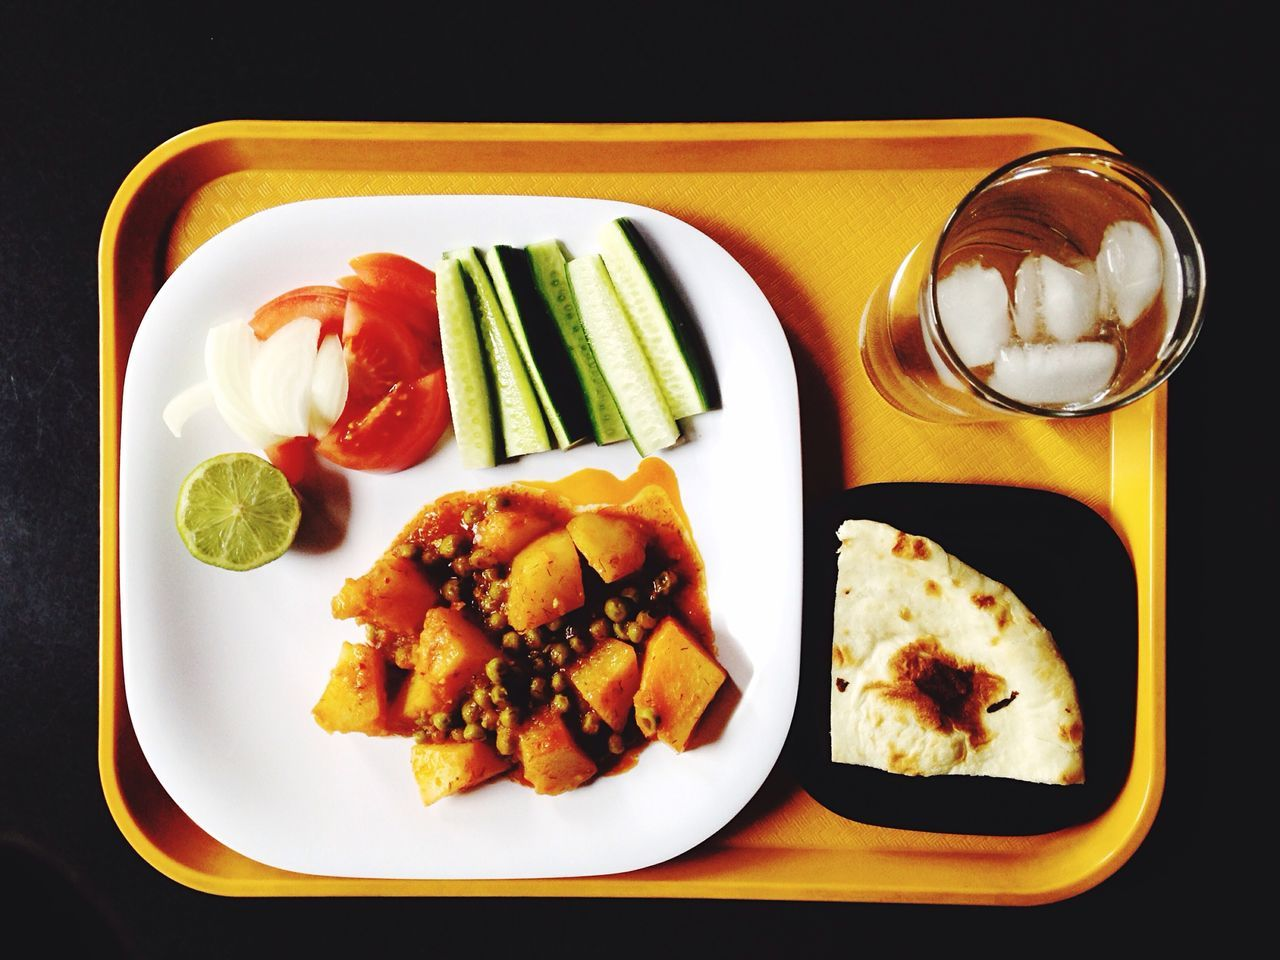 Food served in tray on table